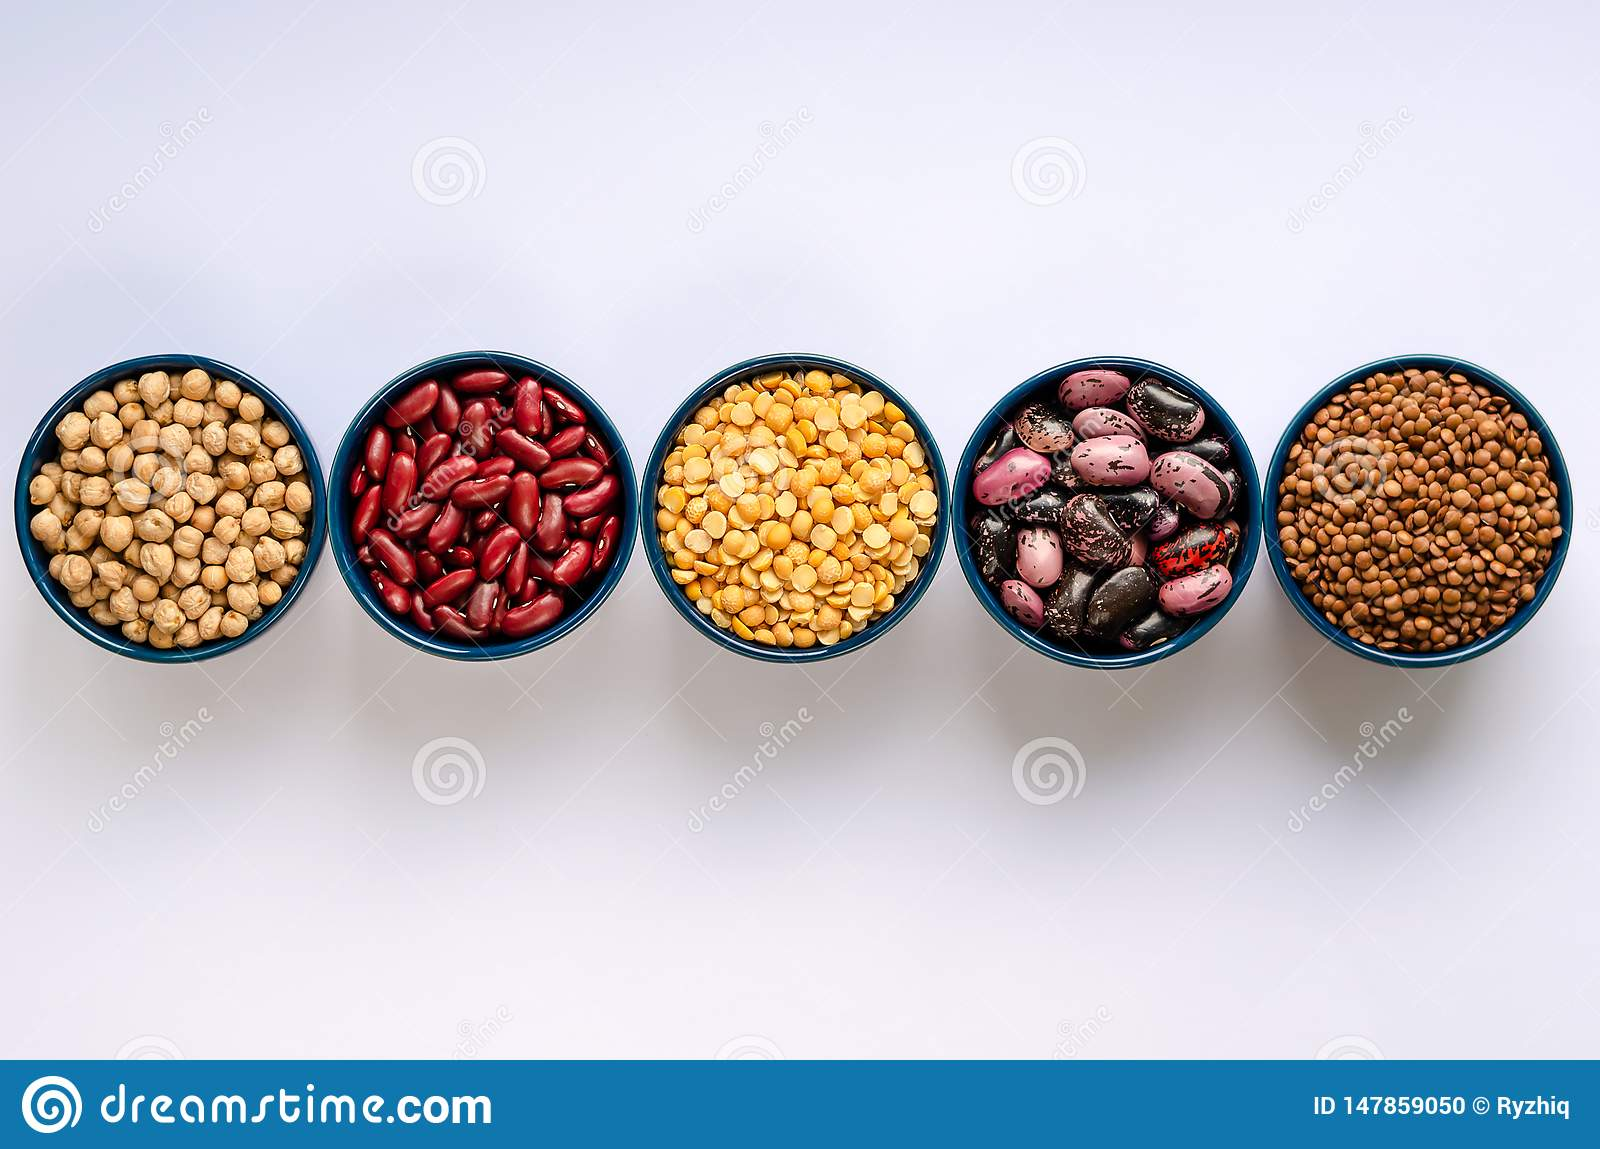 A variety of legumes. Lentils, chickpeas, peas and beans in blue bowls on a white background. Top view